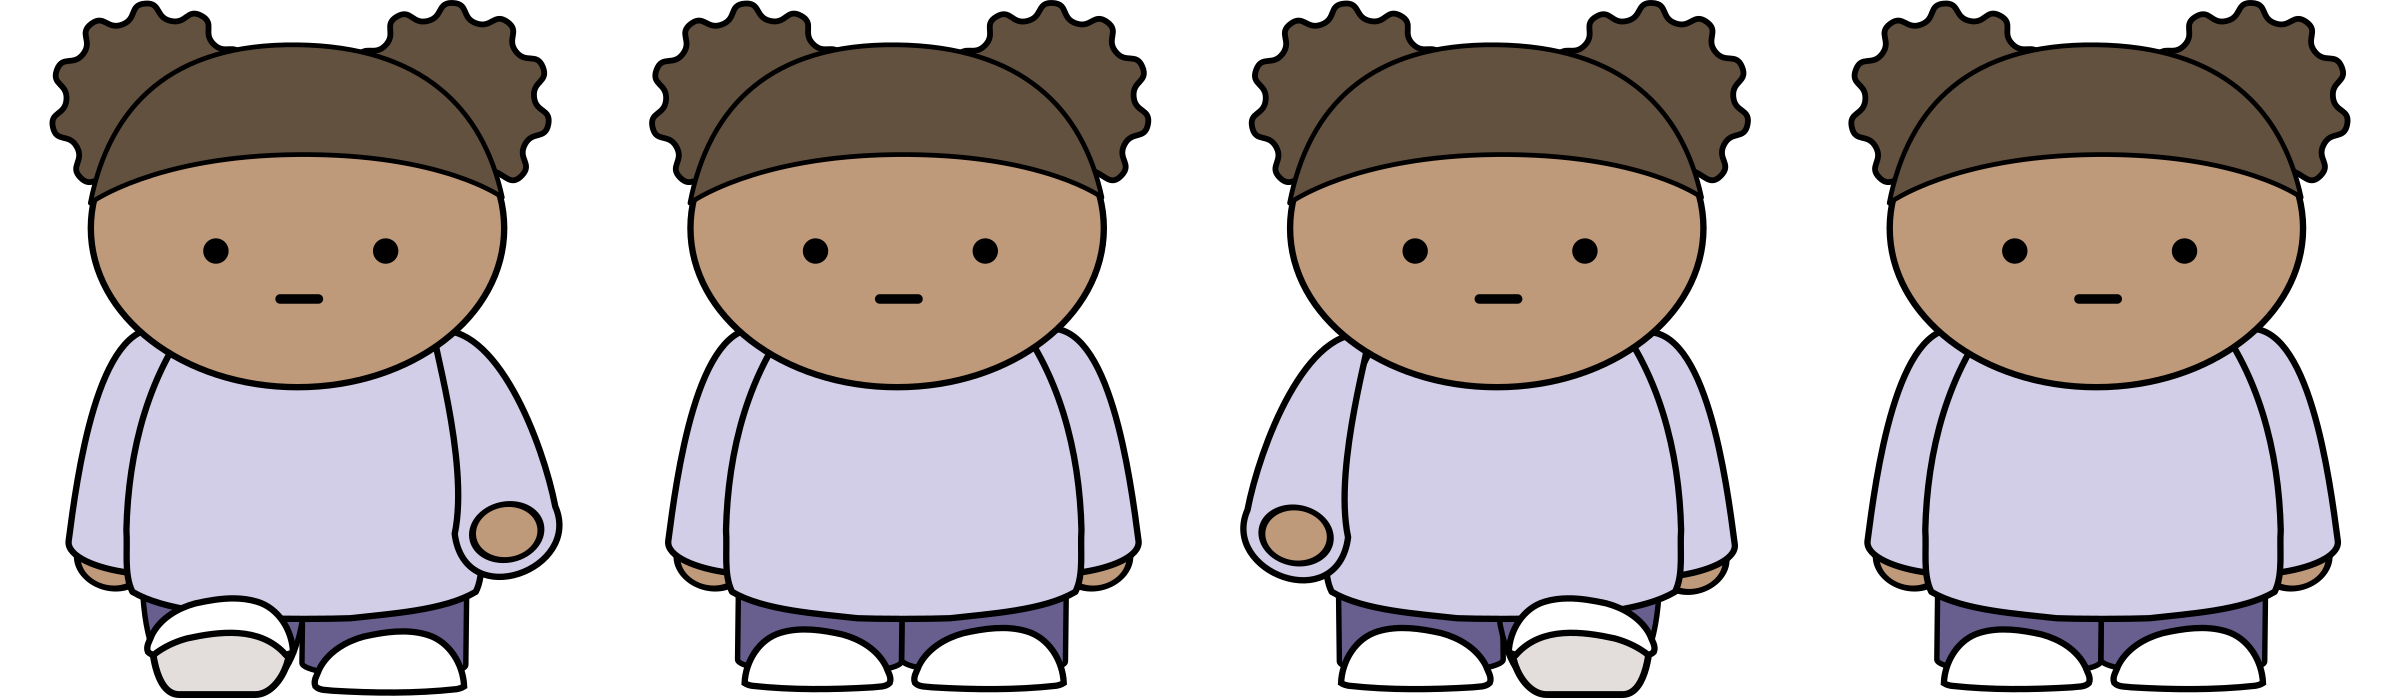 Sprite sheet png walking. Girl icons free and